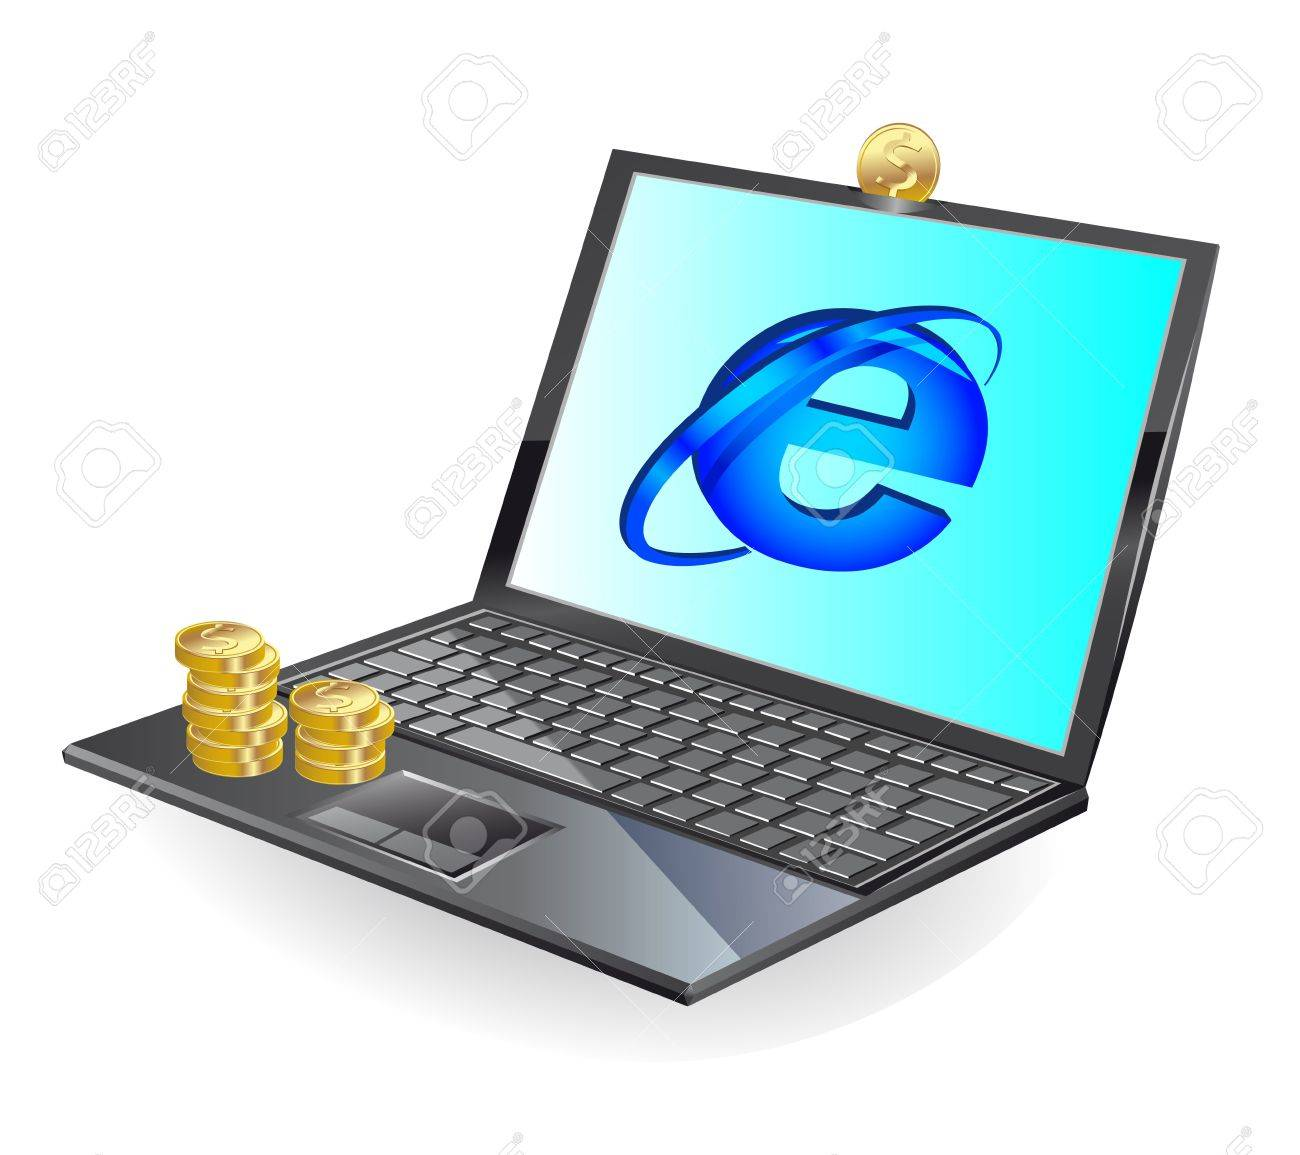 black laptop and gold coinsl  illustration Stock Photo - 7317577